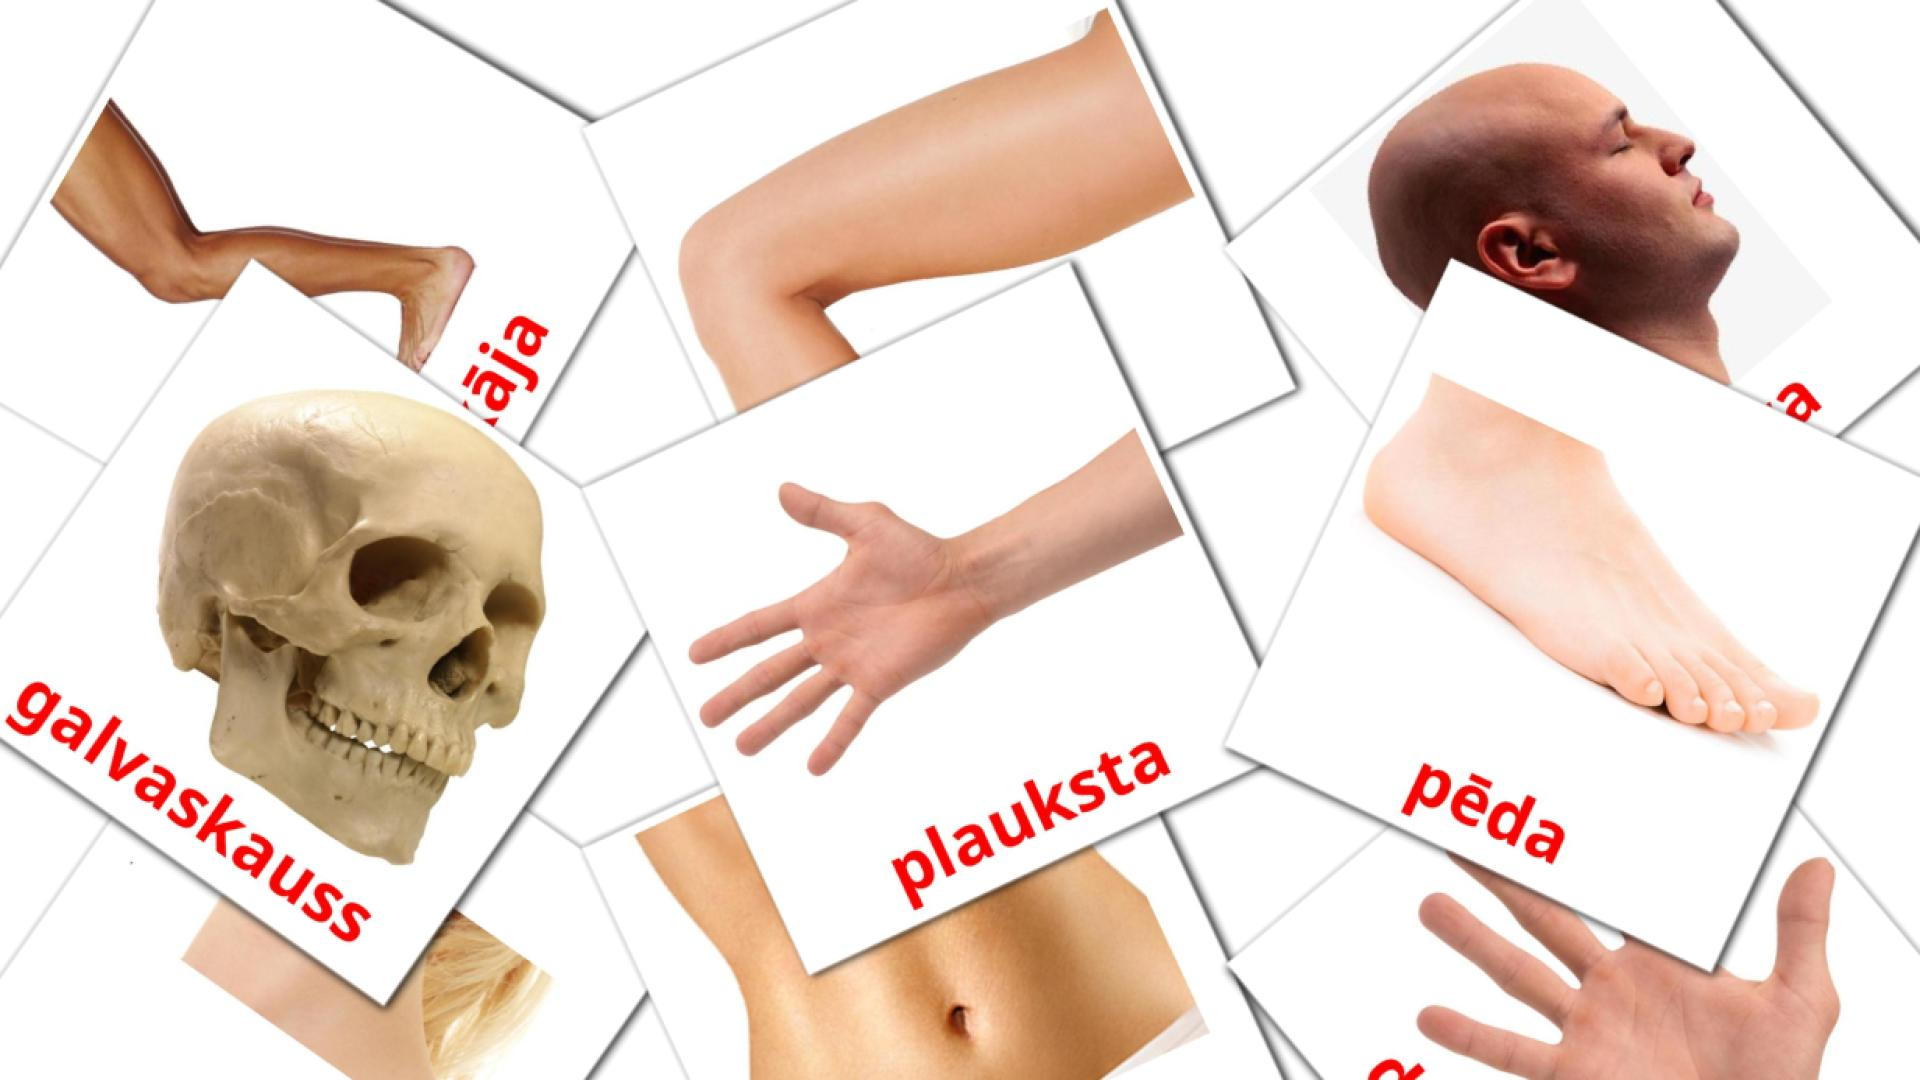 Body Parts flashcards